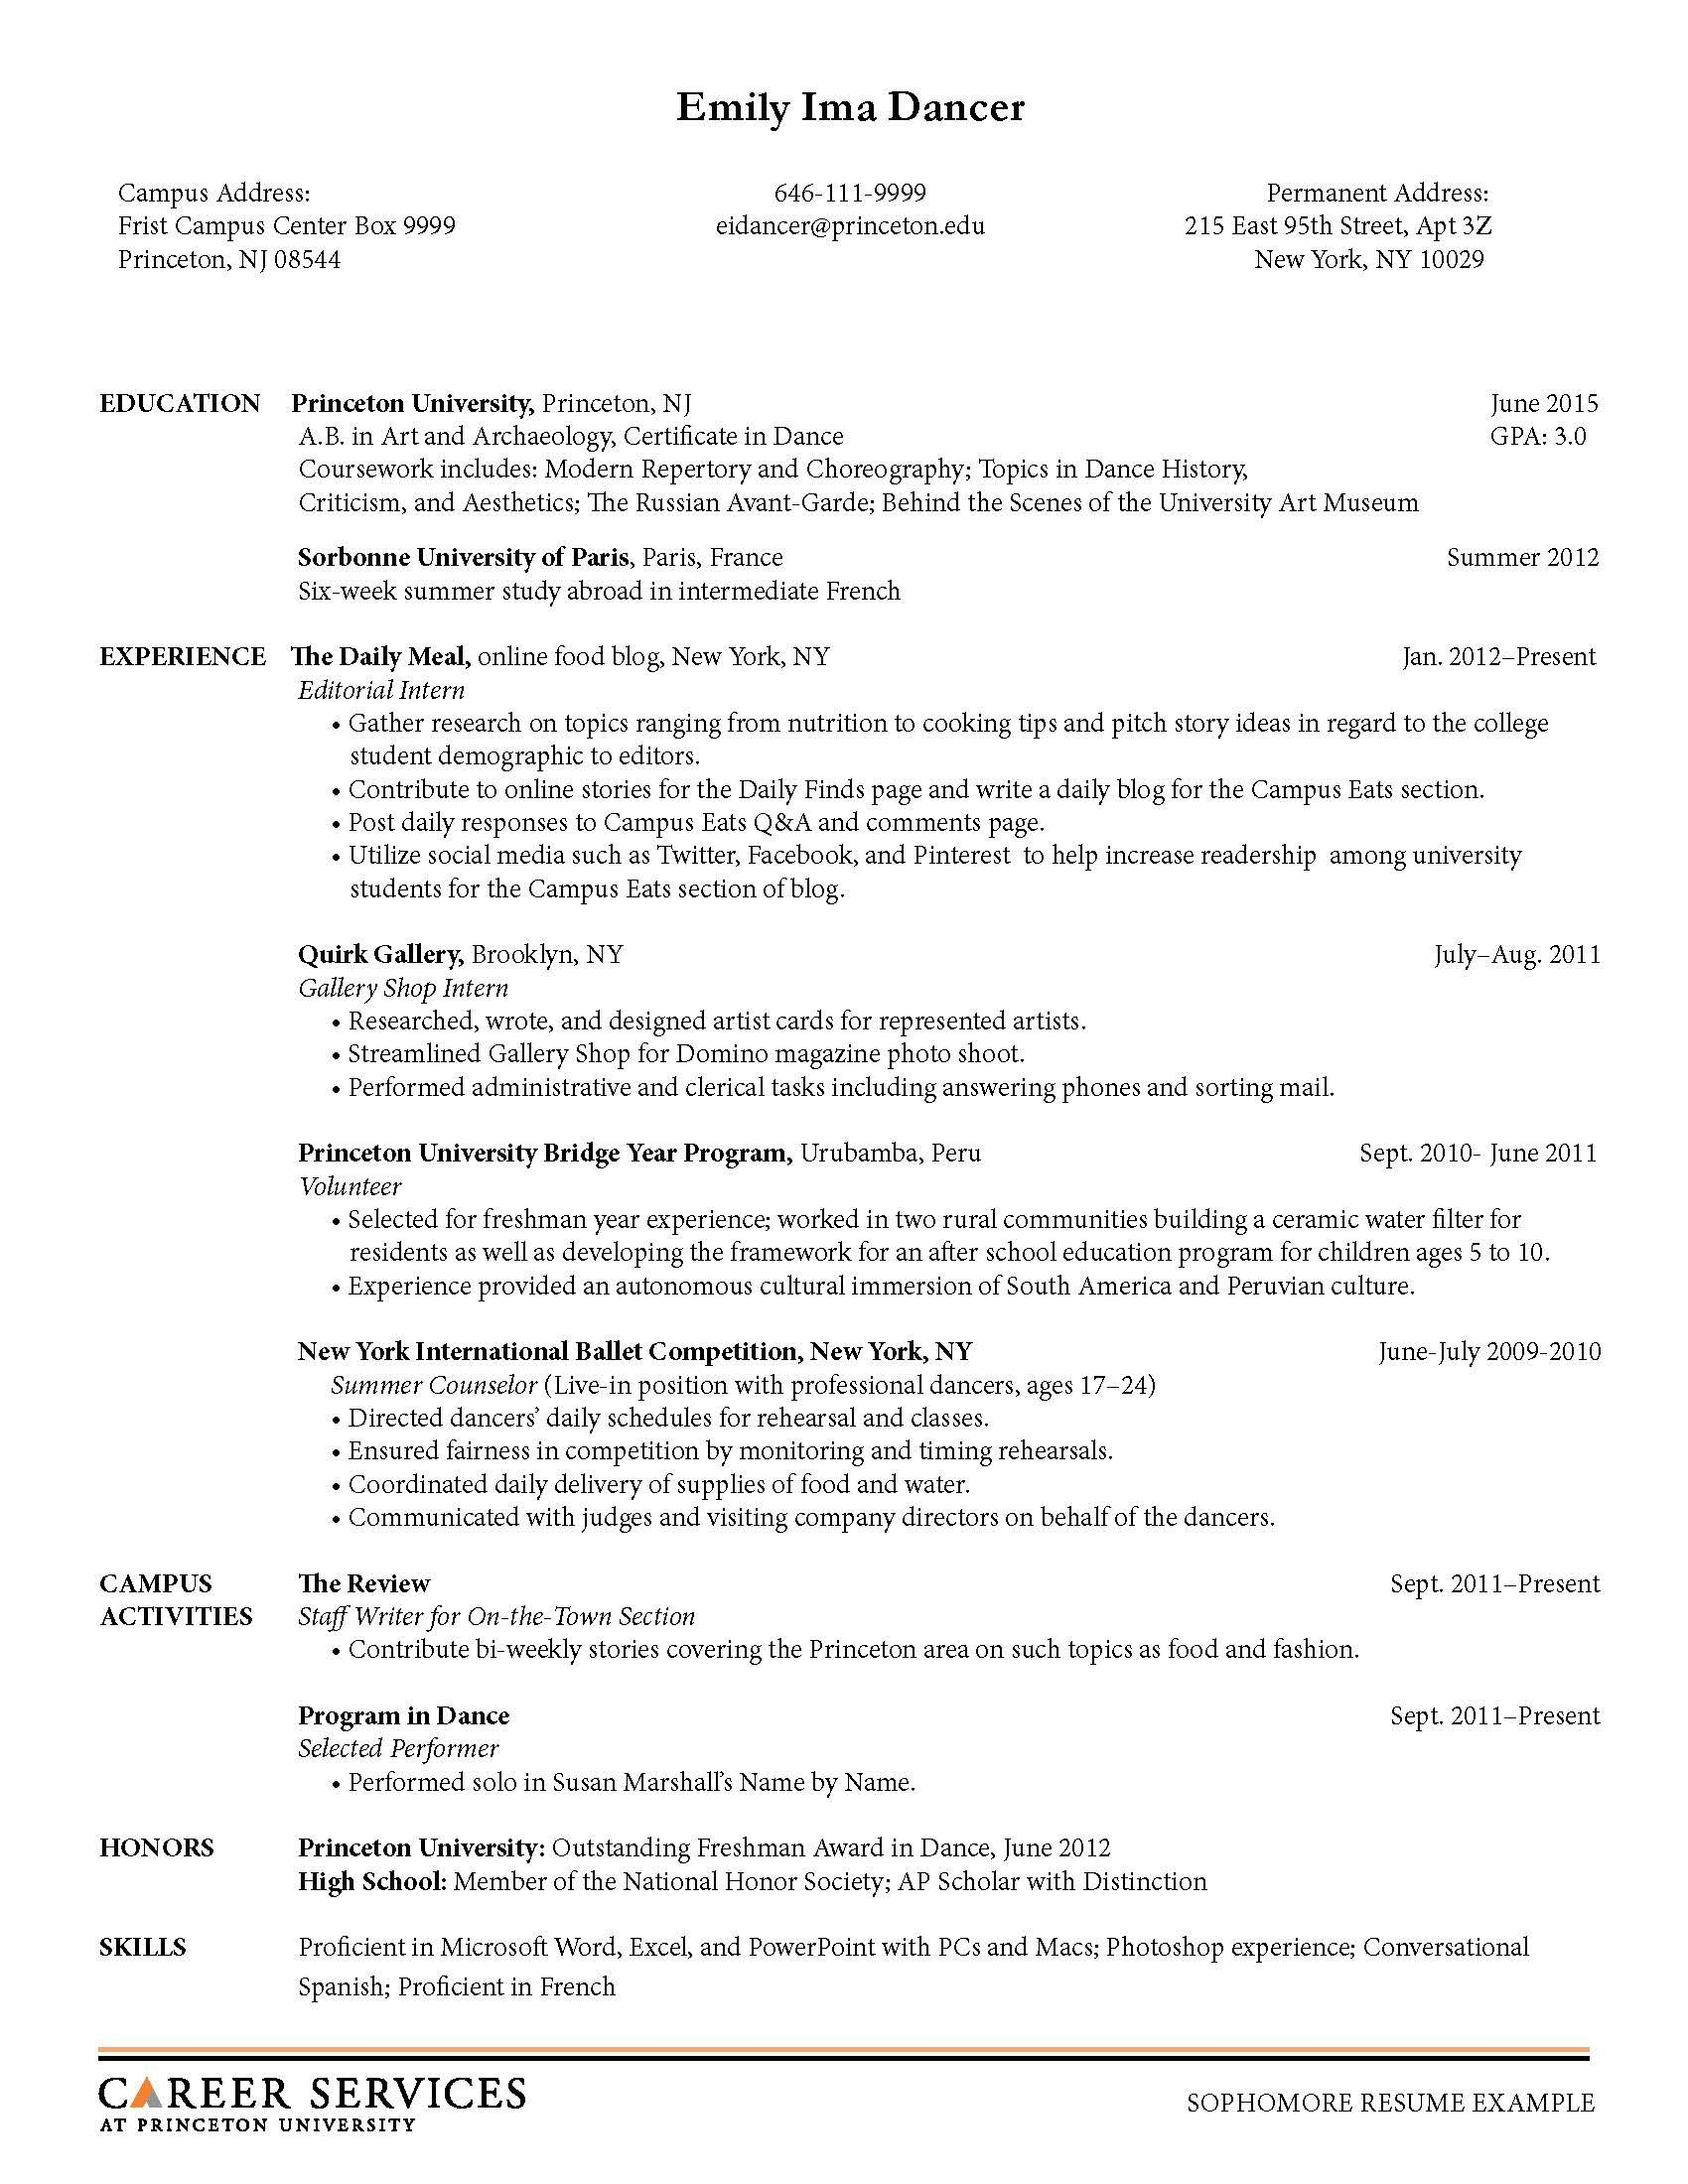 Opposenewapstandardsus  Pleasing Sample Resume Resume And Career On Pinterest With Fetching Resume Versus Cv Besides Yoga Teacher Resume Furthermore Occupational Therapist Resume With Astounding What To Include In Resume Also Resume Writing Companies In Addition Internal Resume And How To Put Education On Resume As Well As Resume Place Additionally Claims Adjuster Resume From Pinterestcom With Opposenewapstandardsus  Fetching Sample Resume Resume And Career On Pinterest With Astounding Resume Versus Cv Besides Yoga Teacher Resume Furthermore Occupational Therapist Resume And Pleasing What To Include In Resume Also Resume Writing Companies In Addition Internal Resume From Pinterestcom